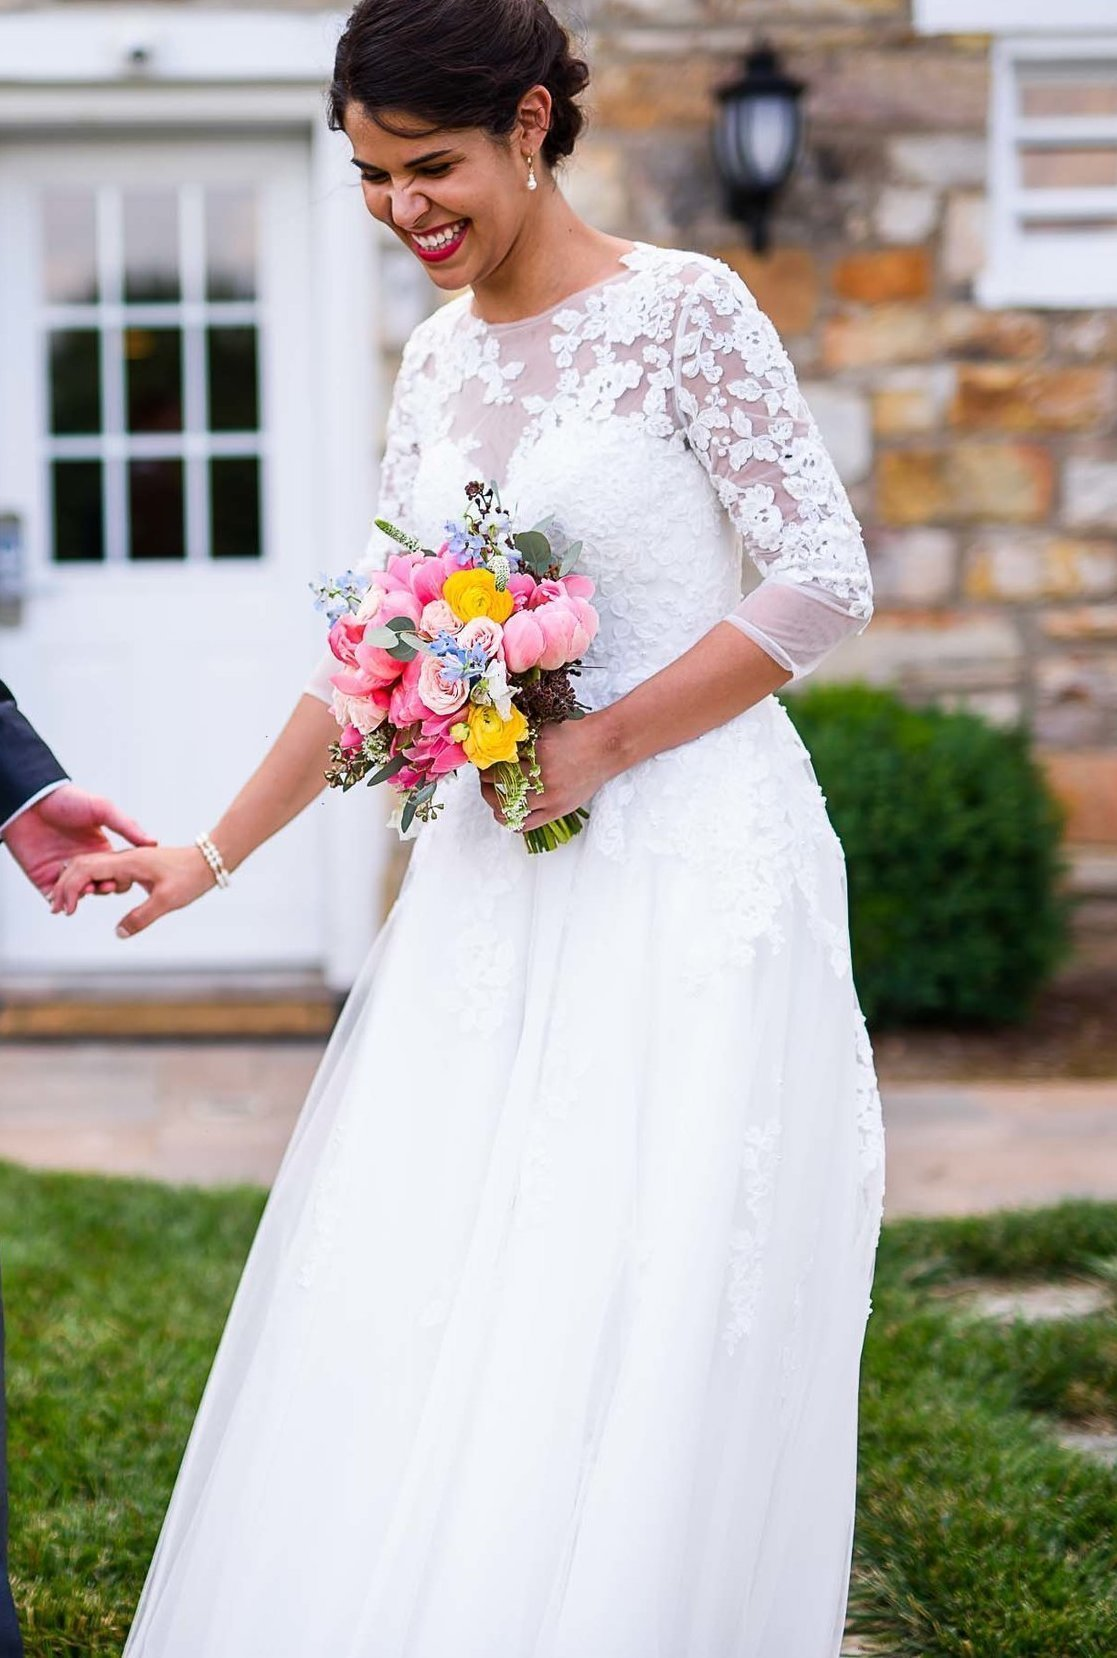 Anomalie creates online custom wedding dresses, including boho gowns with long lace sleeves and flowy skirt.